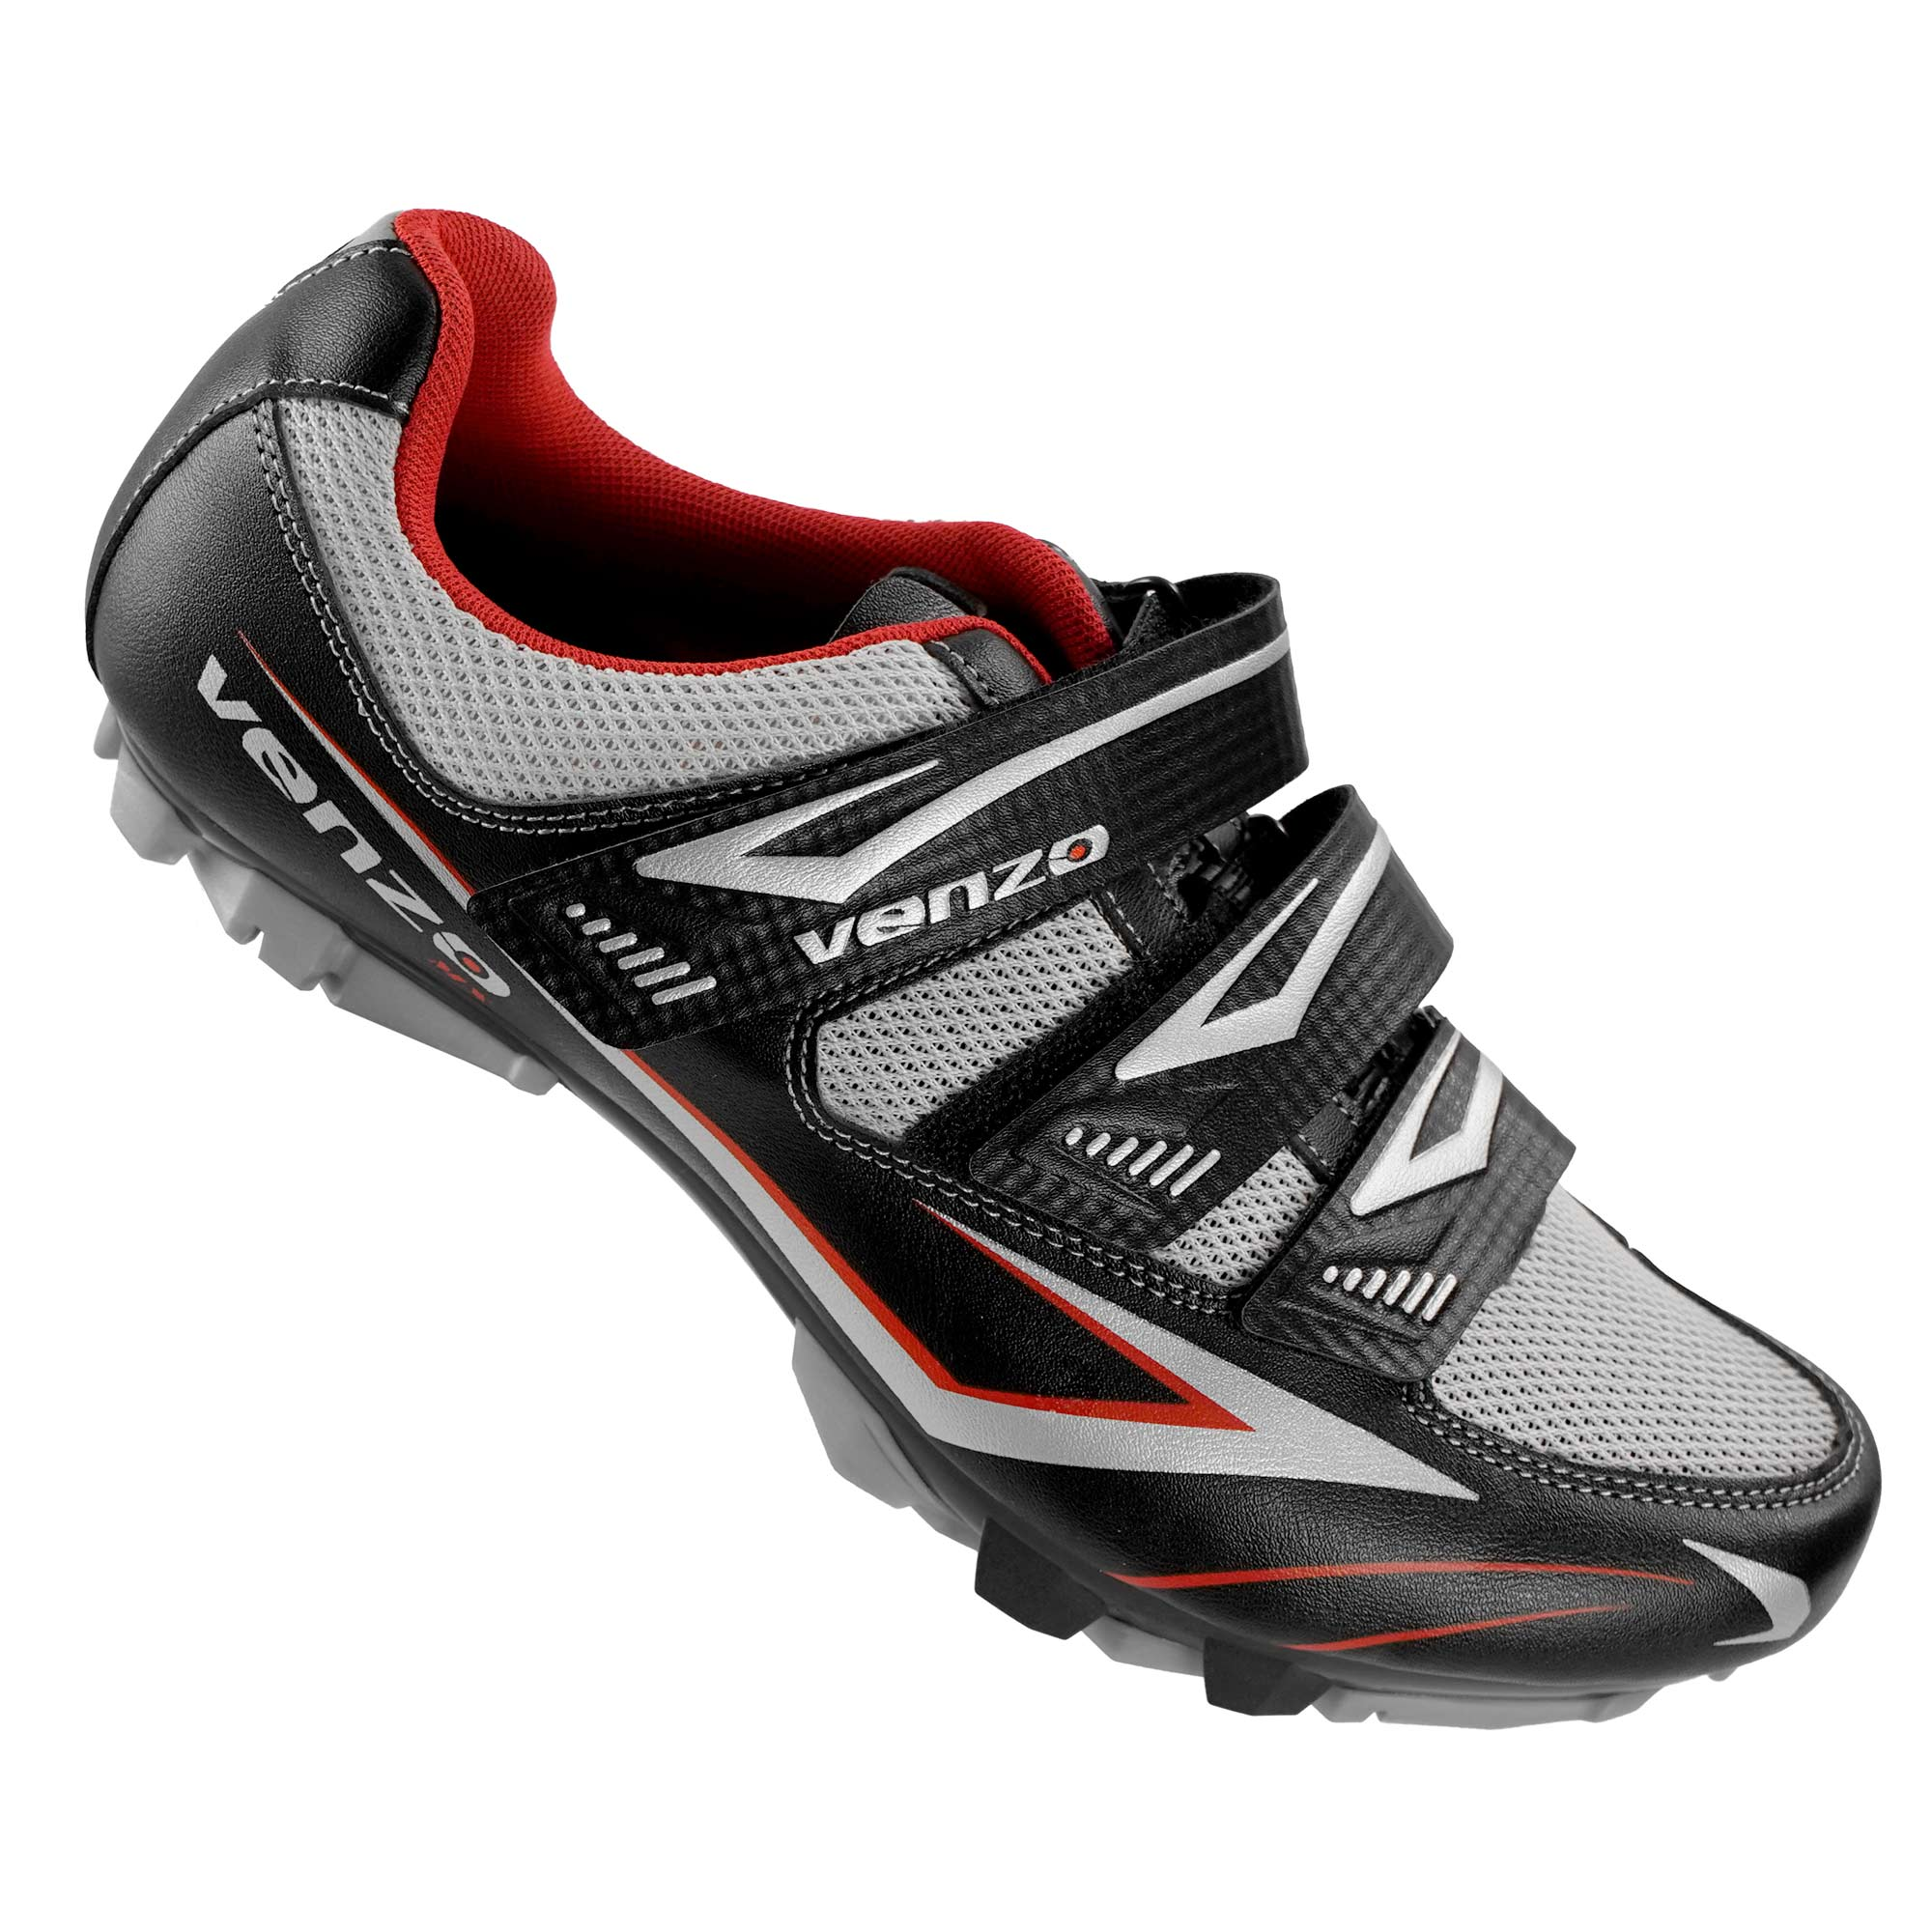 Venzo Mountain Bike Bicycle Cycling Shimano SPD Shoes 47